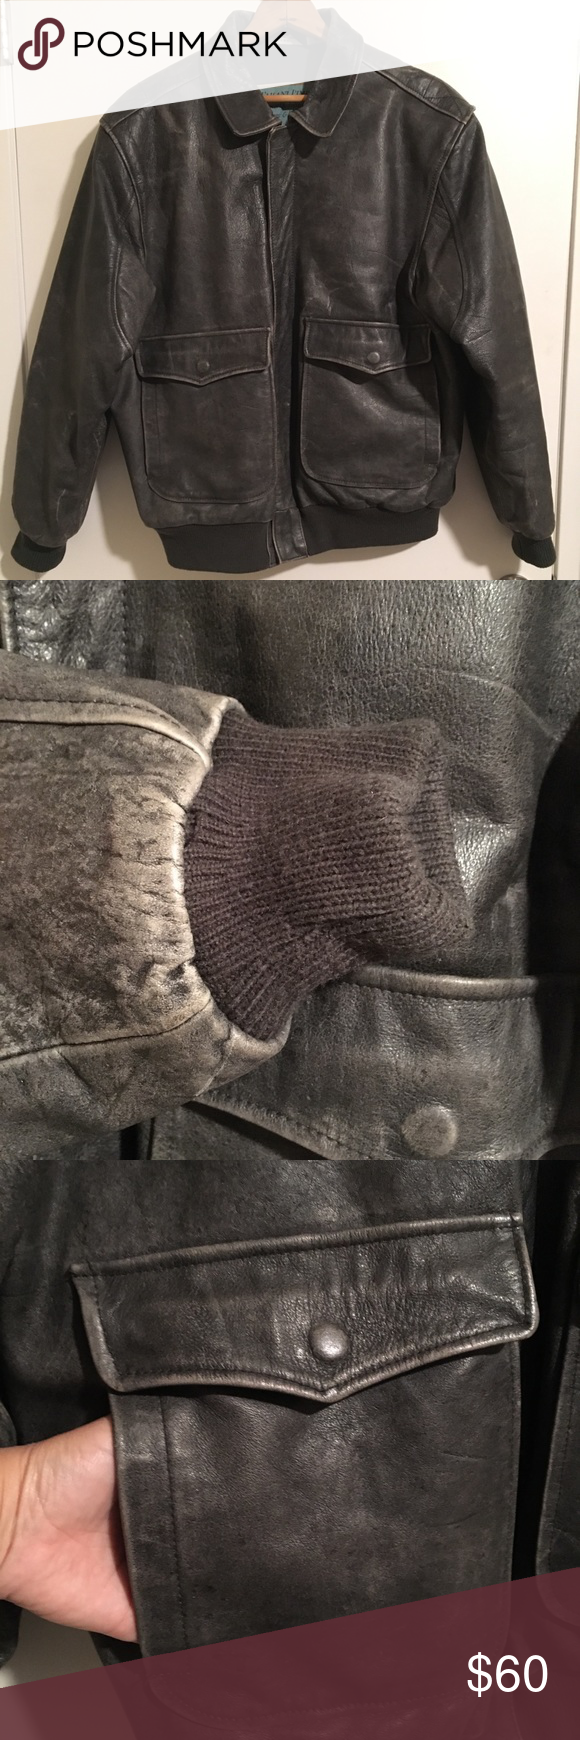 a9a86ec30 Aeropostale Compagnie Generale bomber jacket gray Jacket is in good ...